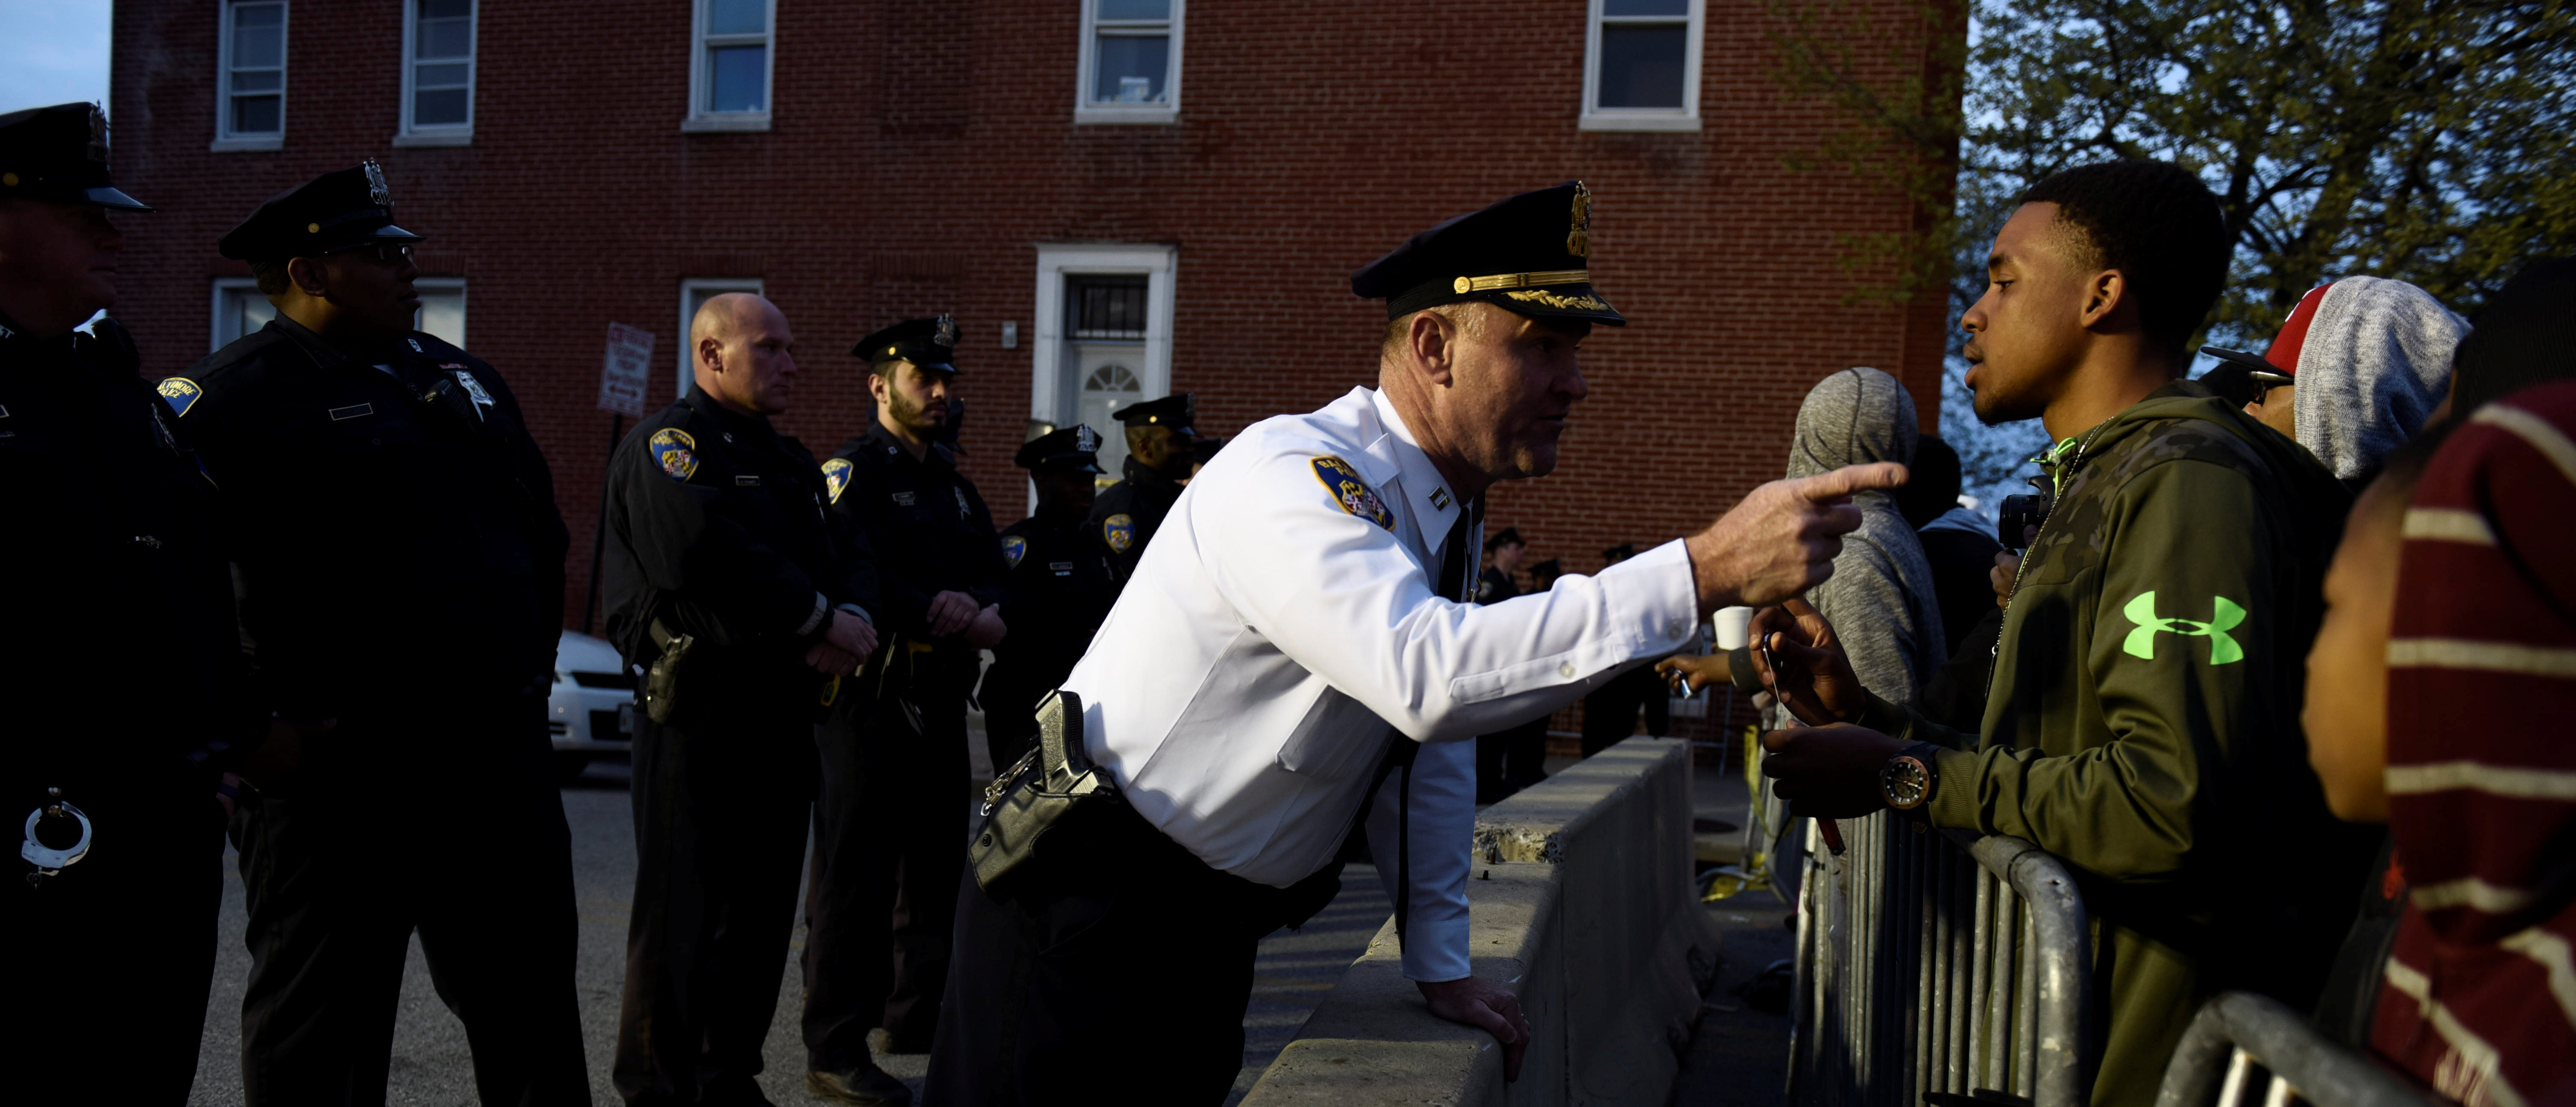 QUALITY REPEATCaptain Erik Pecha of the Baltimore Police Department chats with a young demonstrator in front of the Baltimore Police Department Western District station during a protest against the death in police custody of Freddie Gray in Baltimore April 23, 2015. The U.S. Southern Christian Leadership Conference will independently investigate the death of a black Baltimore man in police custody, with the local head of the civil rights group saying it lacked confidence in a police probe into the death. REUTERS/Sait Serkan Gurbuz - S1BEUBLGZNAA